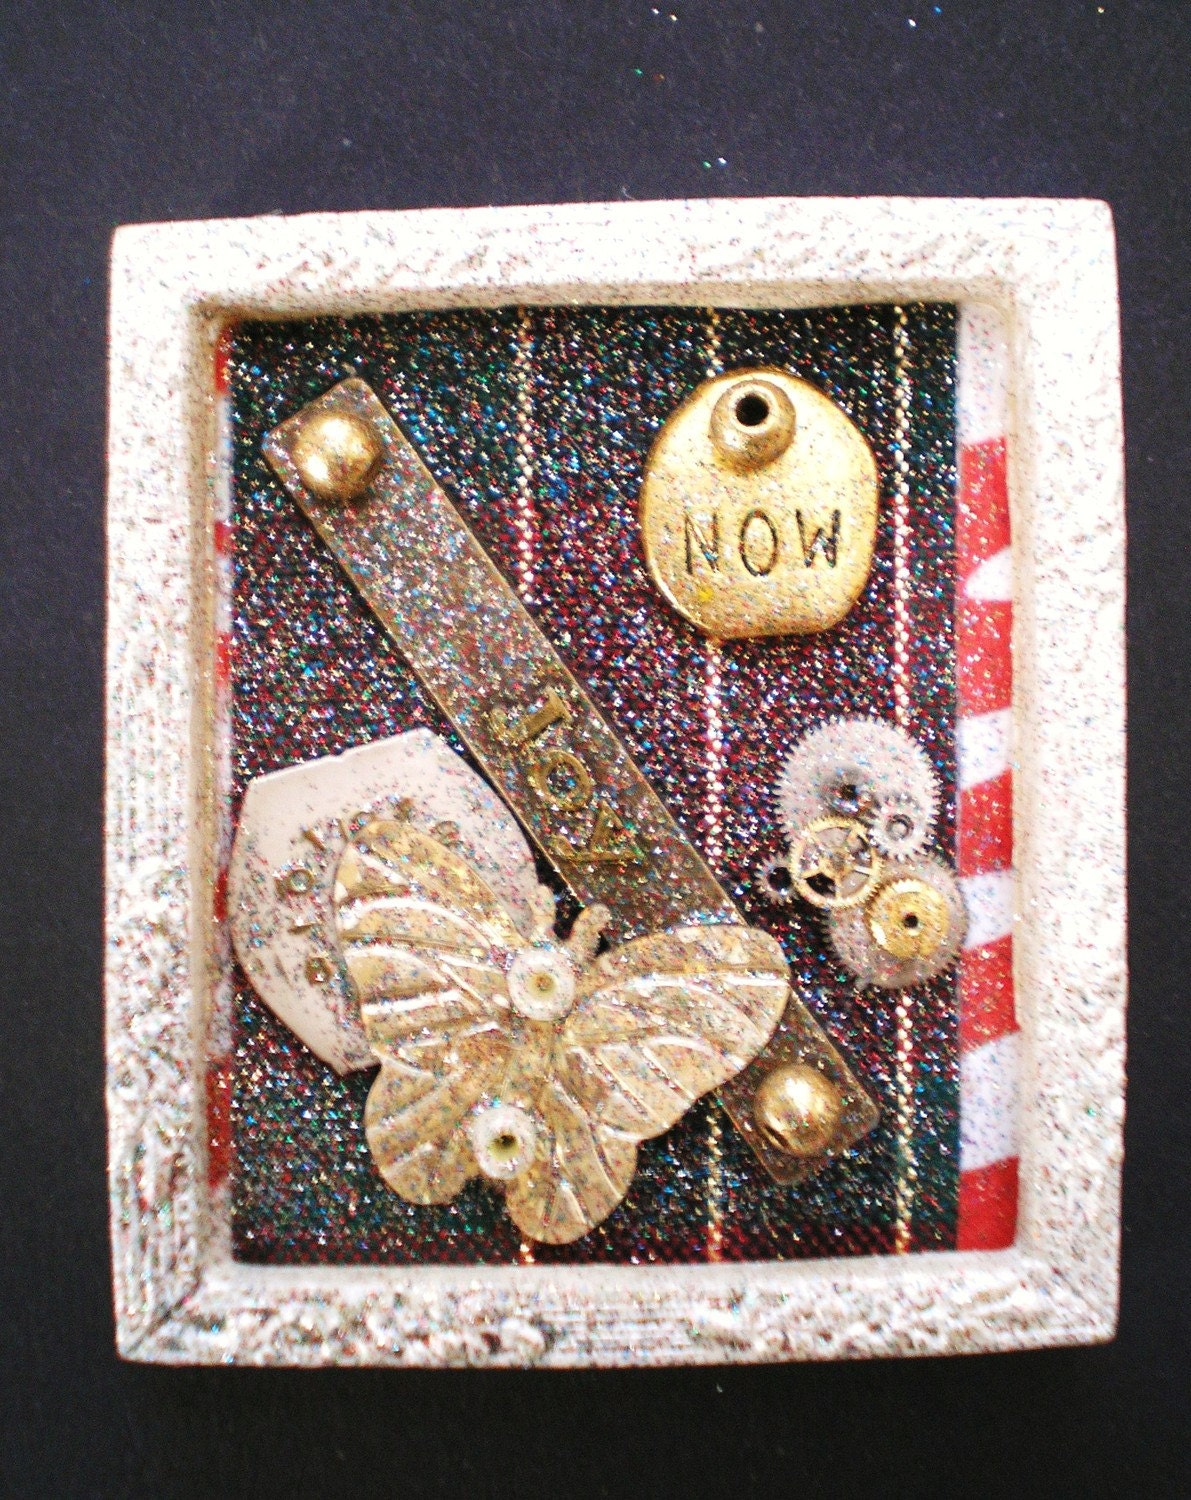 JOY  - Tiny Collage Mixed Media OOAK Framed Signed with Beads Butterfly Charm Ribbon Watch Parts